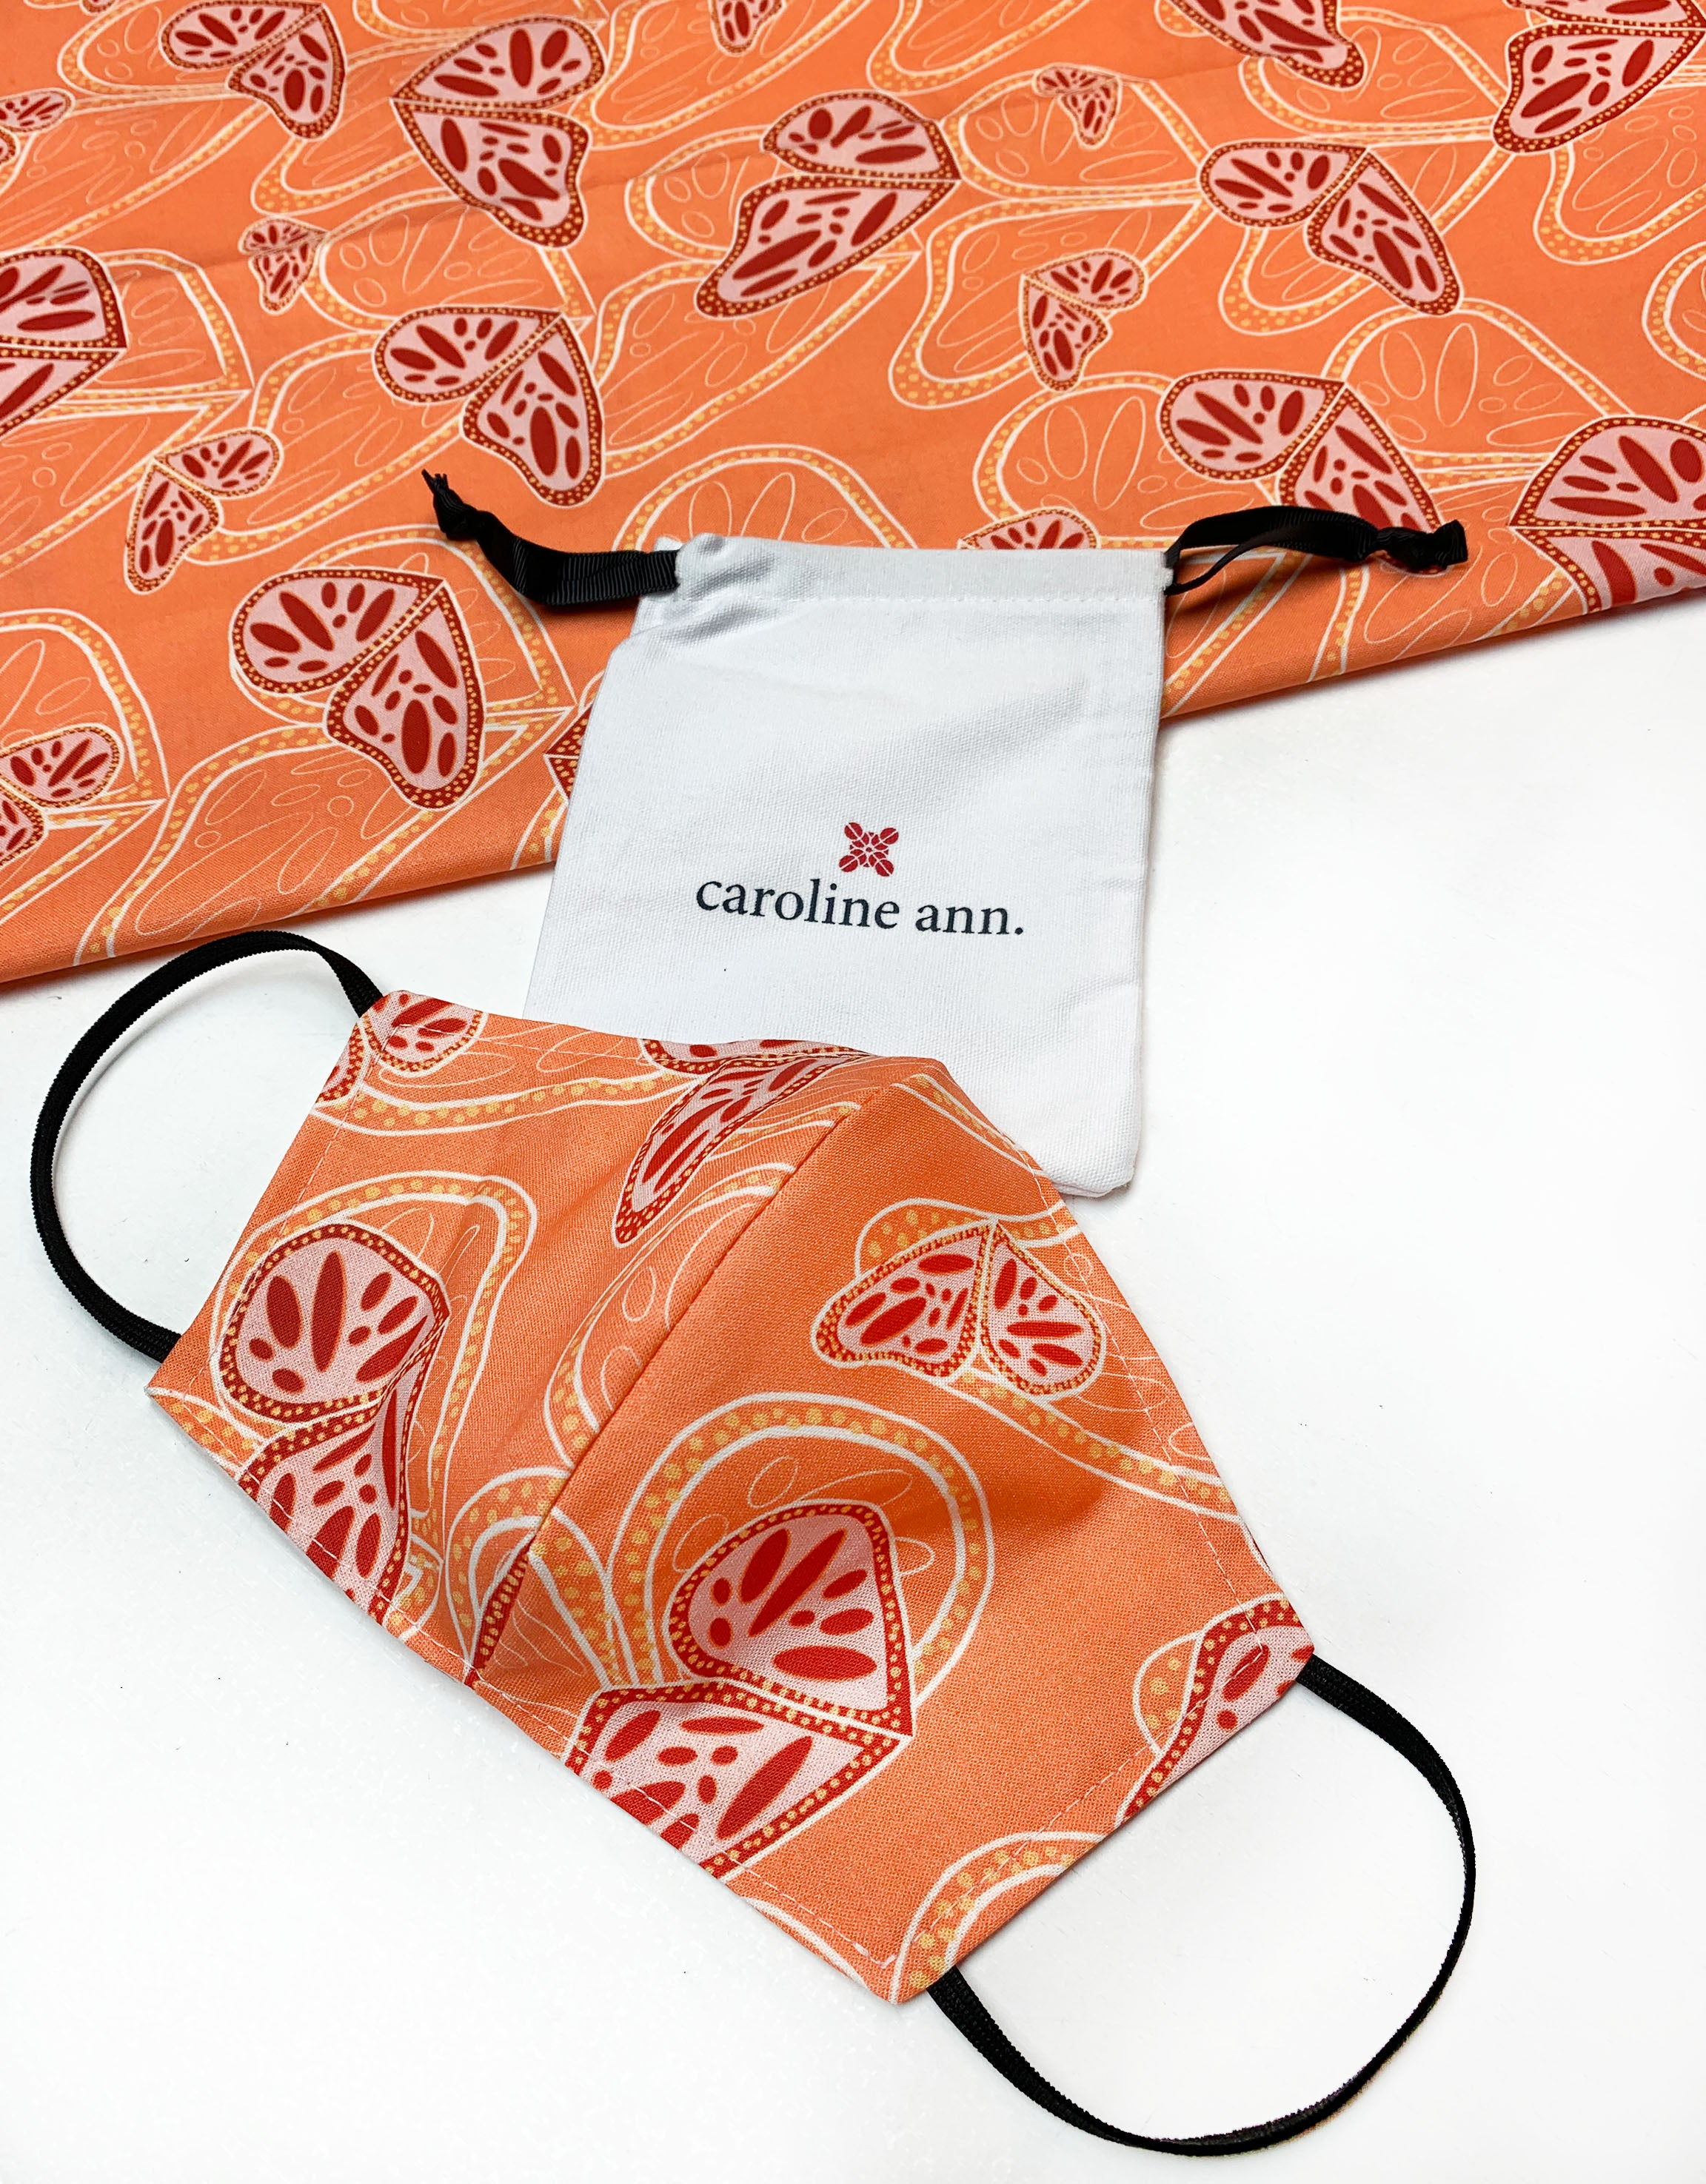 Mariposa Print Mask: Limited Edition!